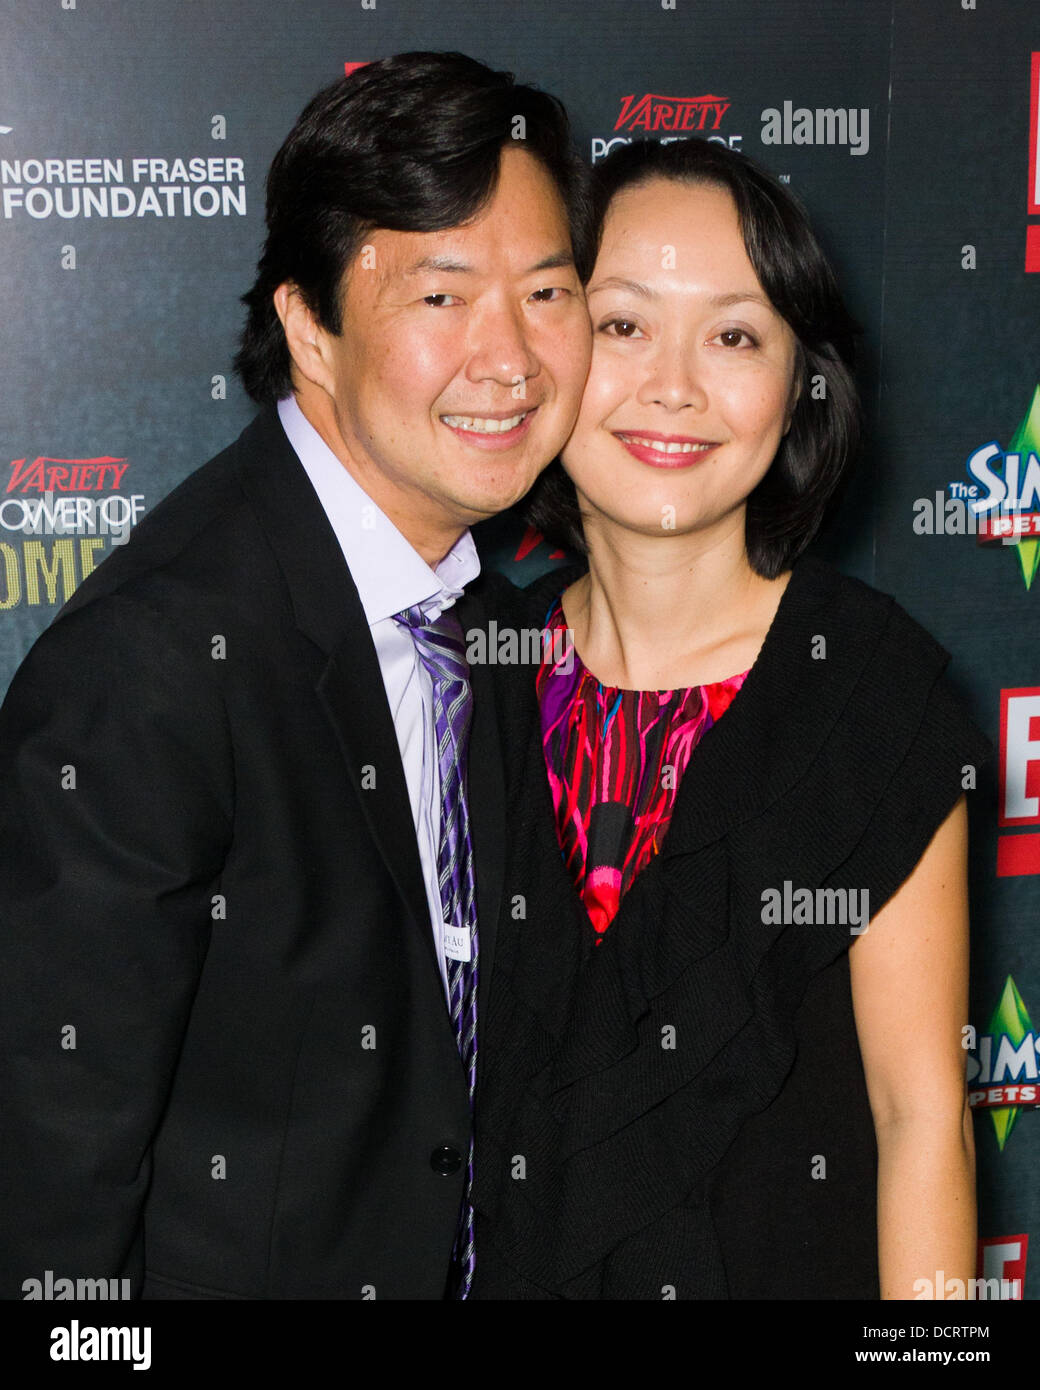 Ken Jeong And Tran Ho Stock Photo 59531324 Alamy